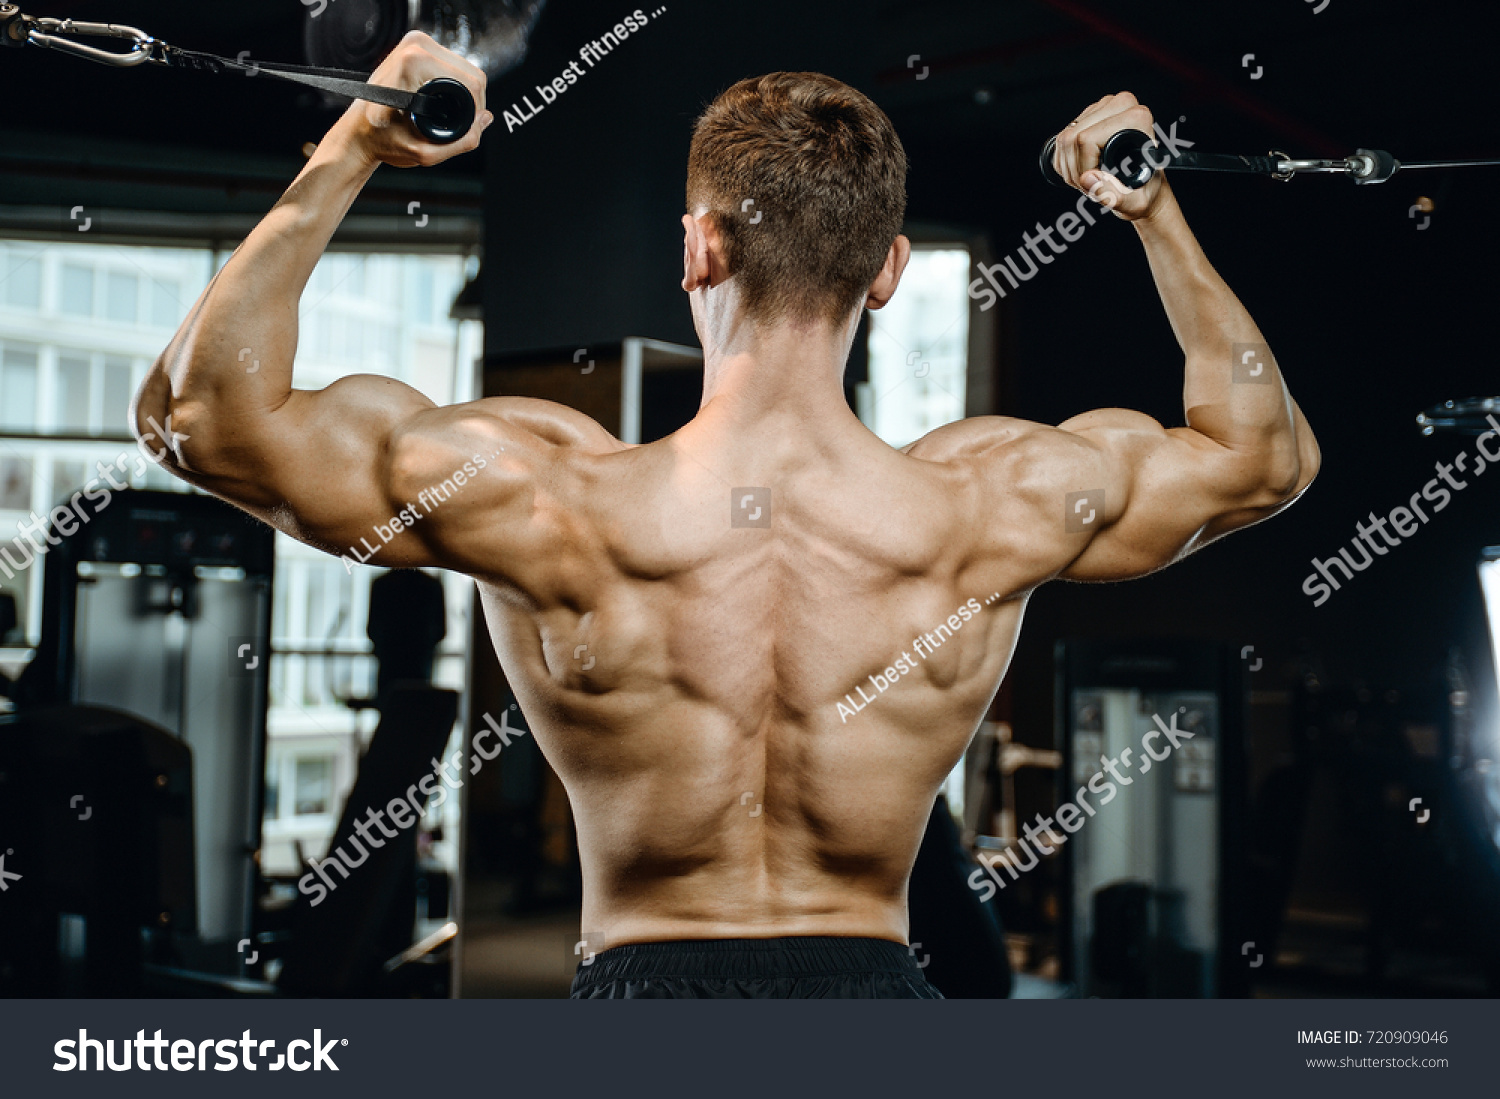 How to pump the broadest muscles 68